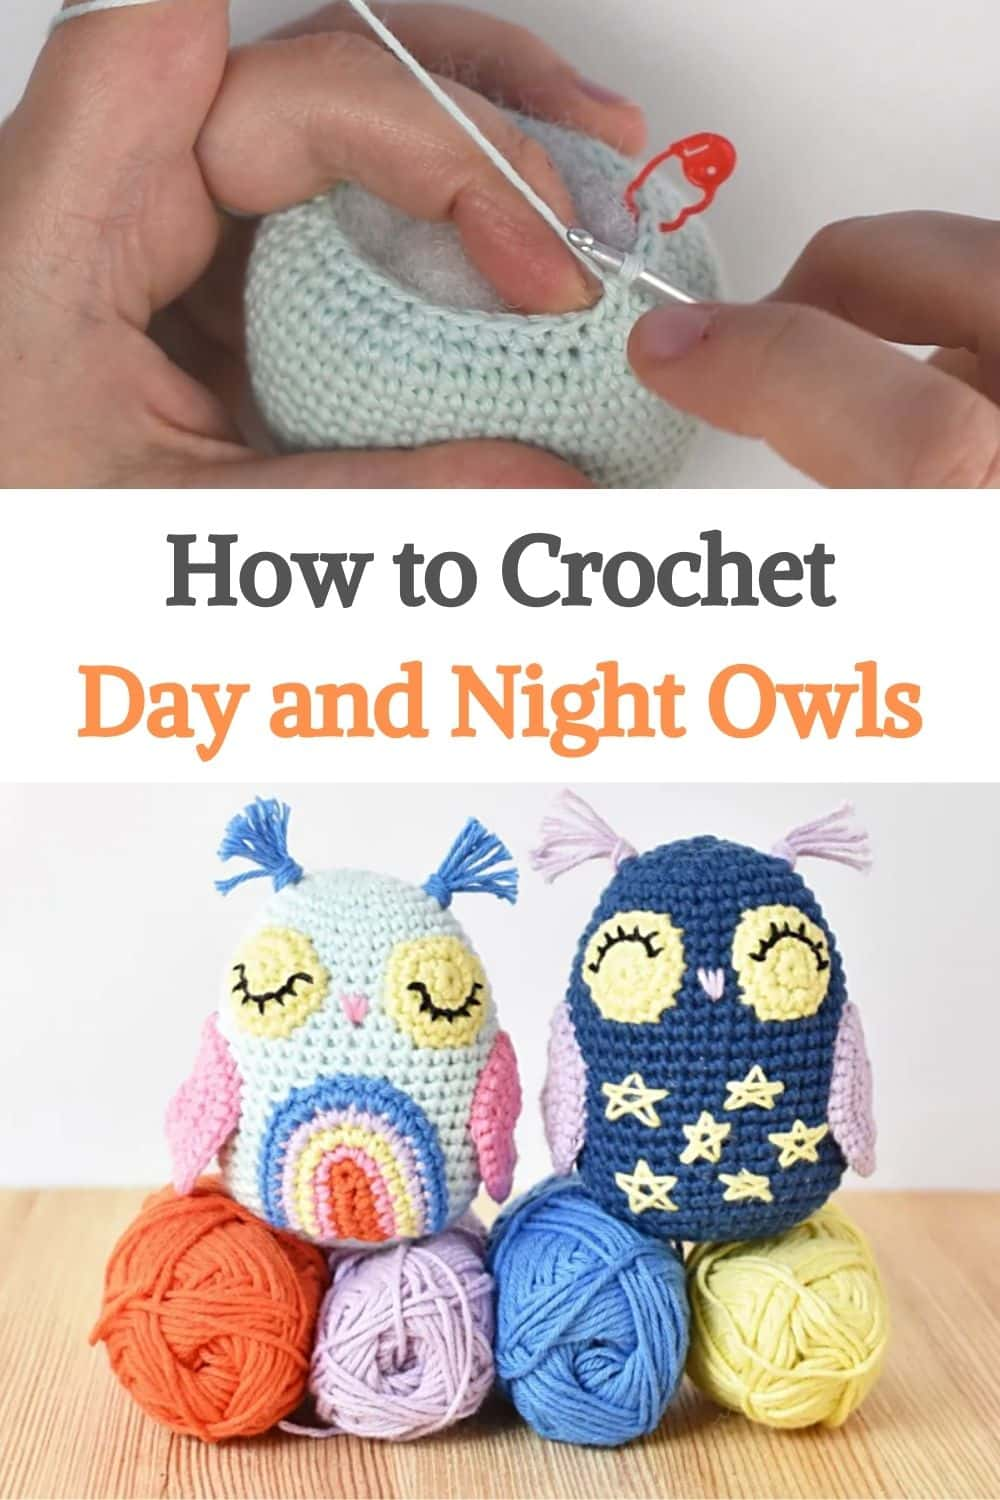 Day and Night Owls